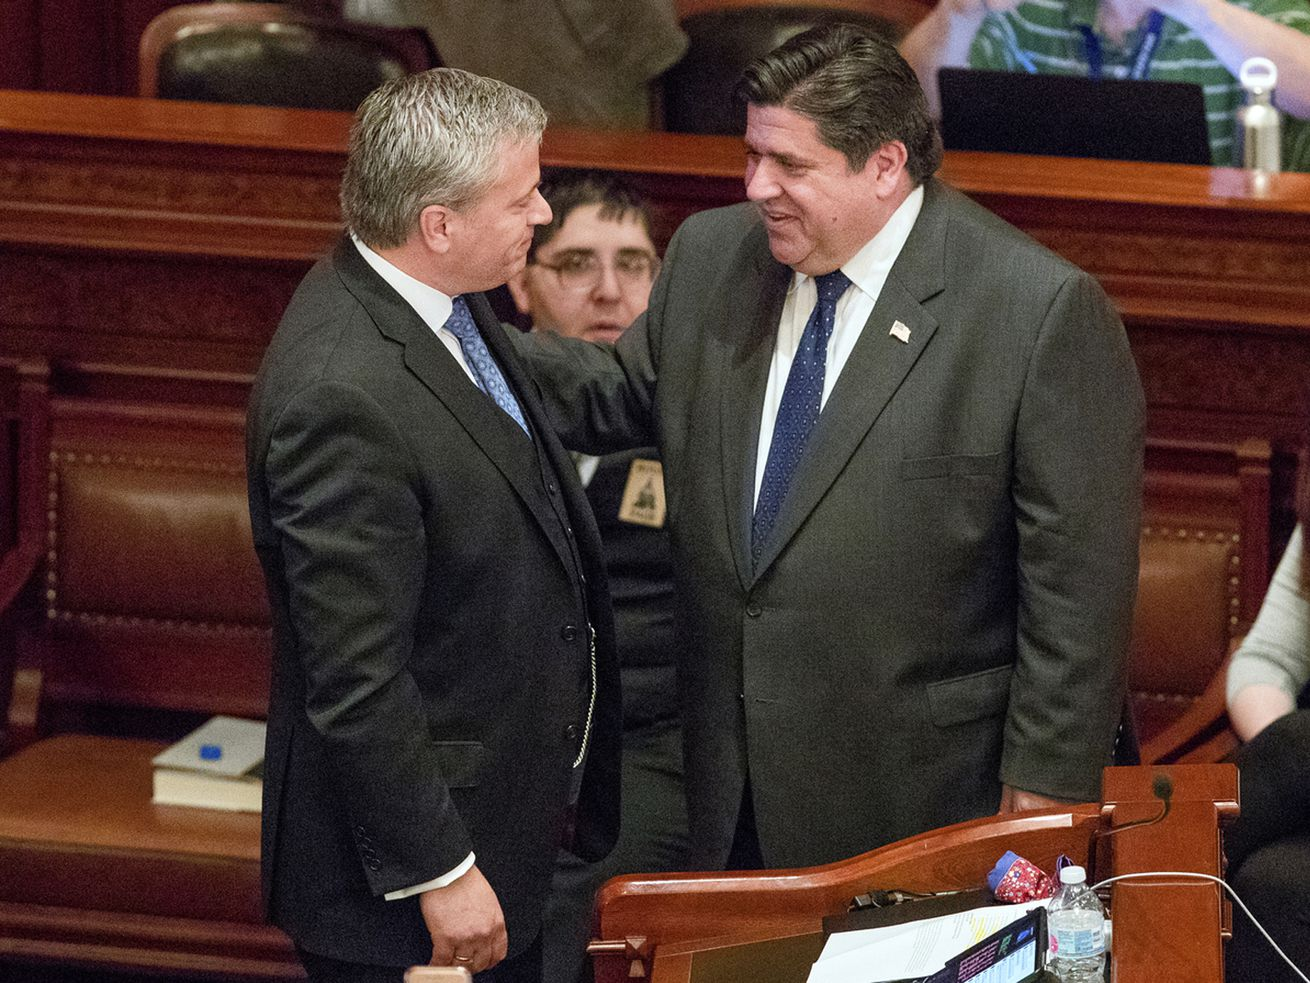 State Rep. Robert Martwick, D-Chicago, left, greets Gov. J.B. Pritzker on the Illinois House floor after the bill to put Pritzker's graduated income tax proposal on the November 2020 ballot passed on Memorial Day.